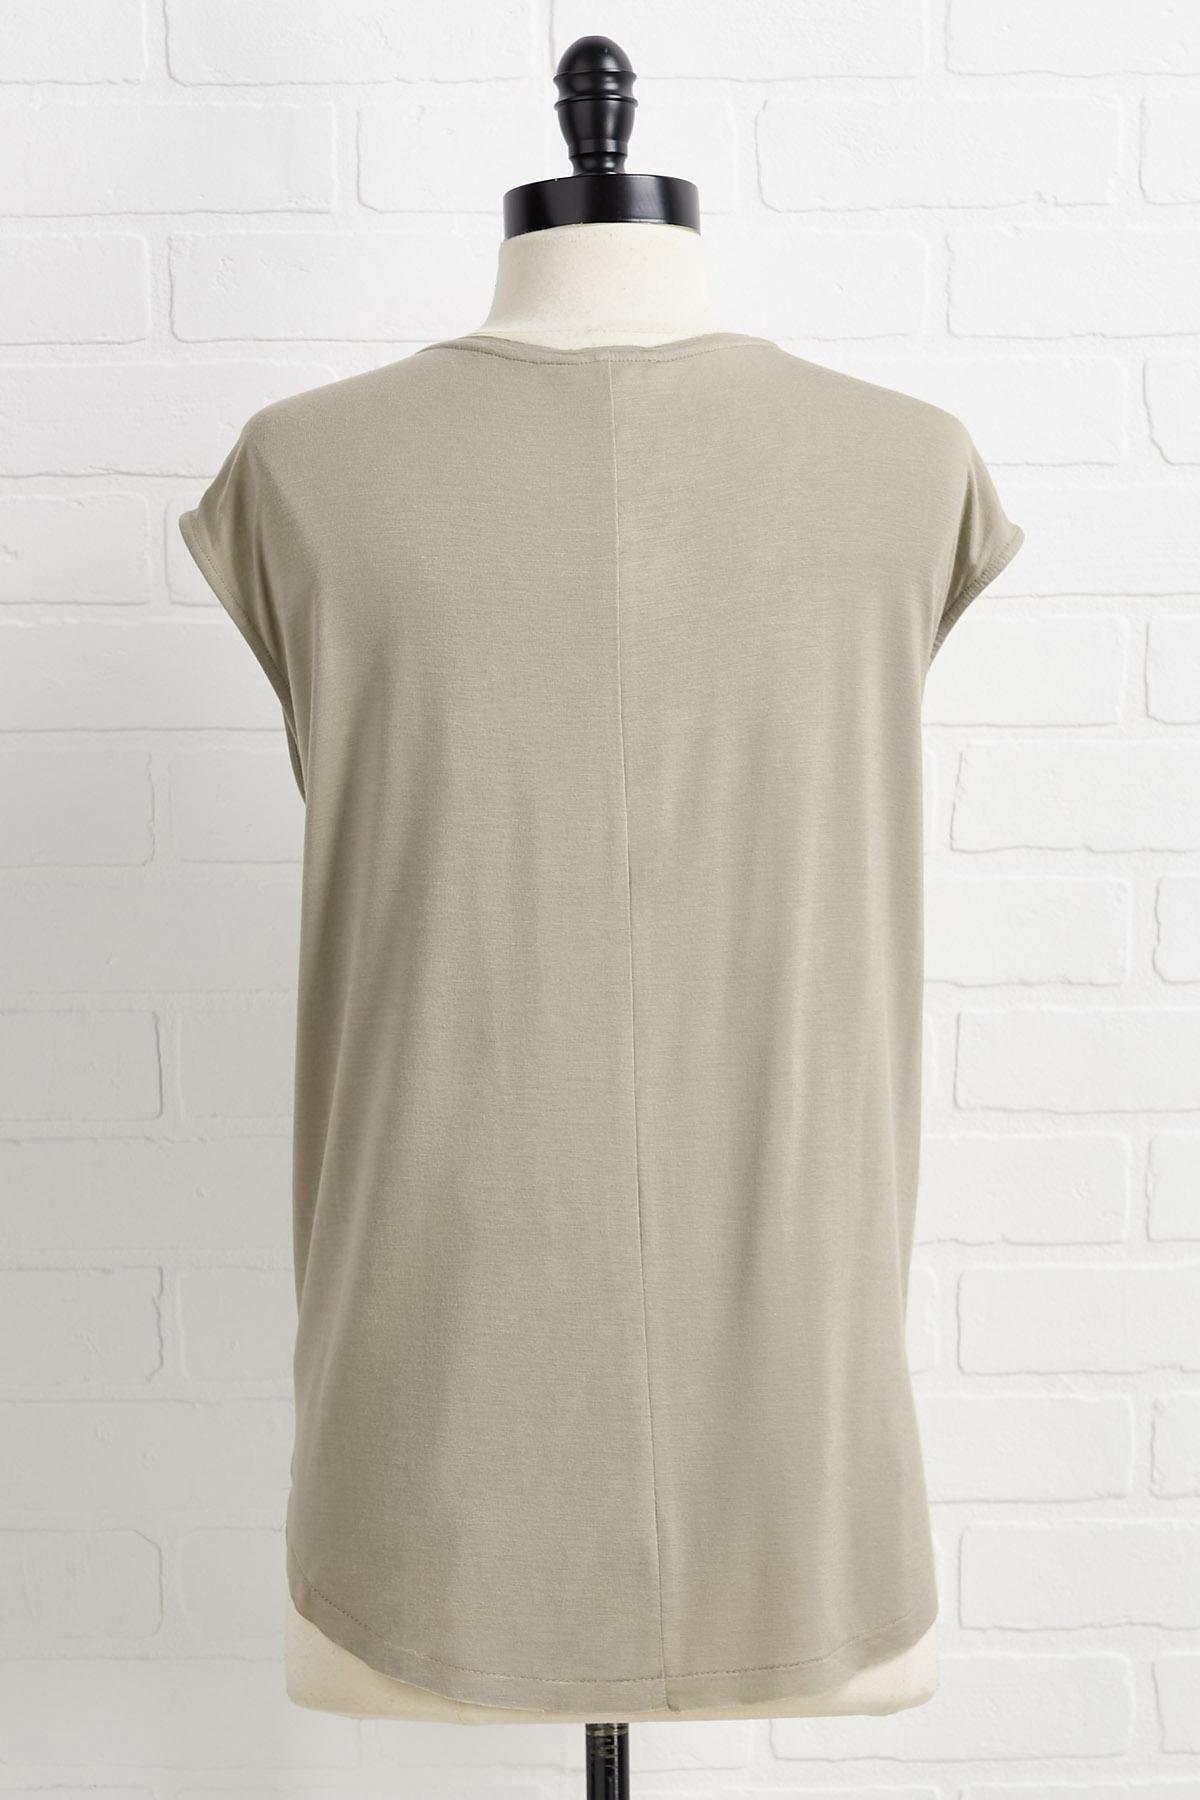 Stay Or Sleeveless Top